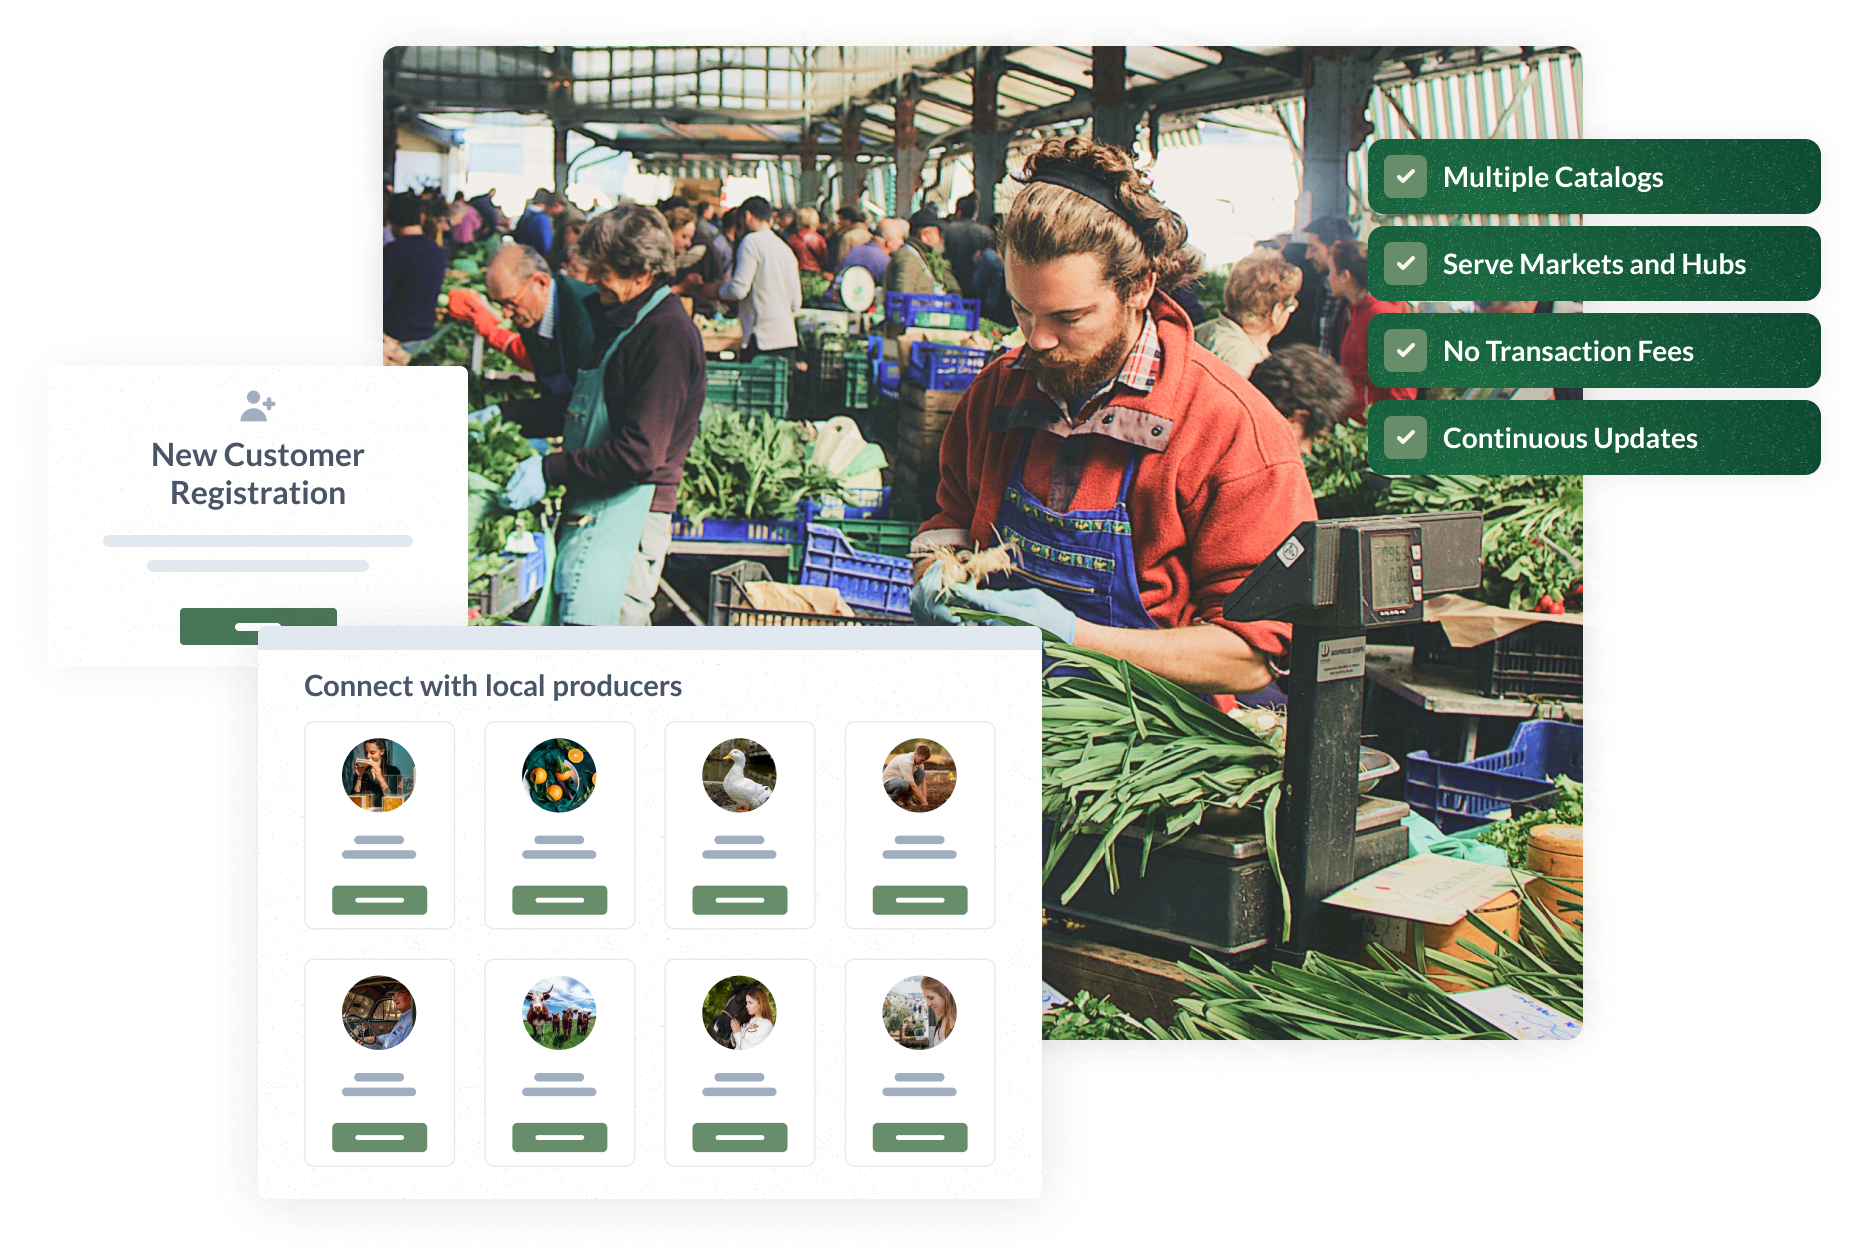 Local Line also offers catalogs, serving markets and food hubs, with no transactions fees and a platform that is continuously improving.